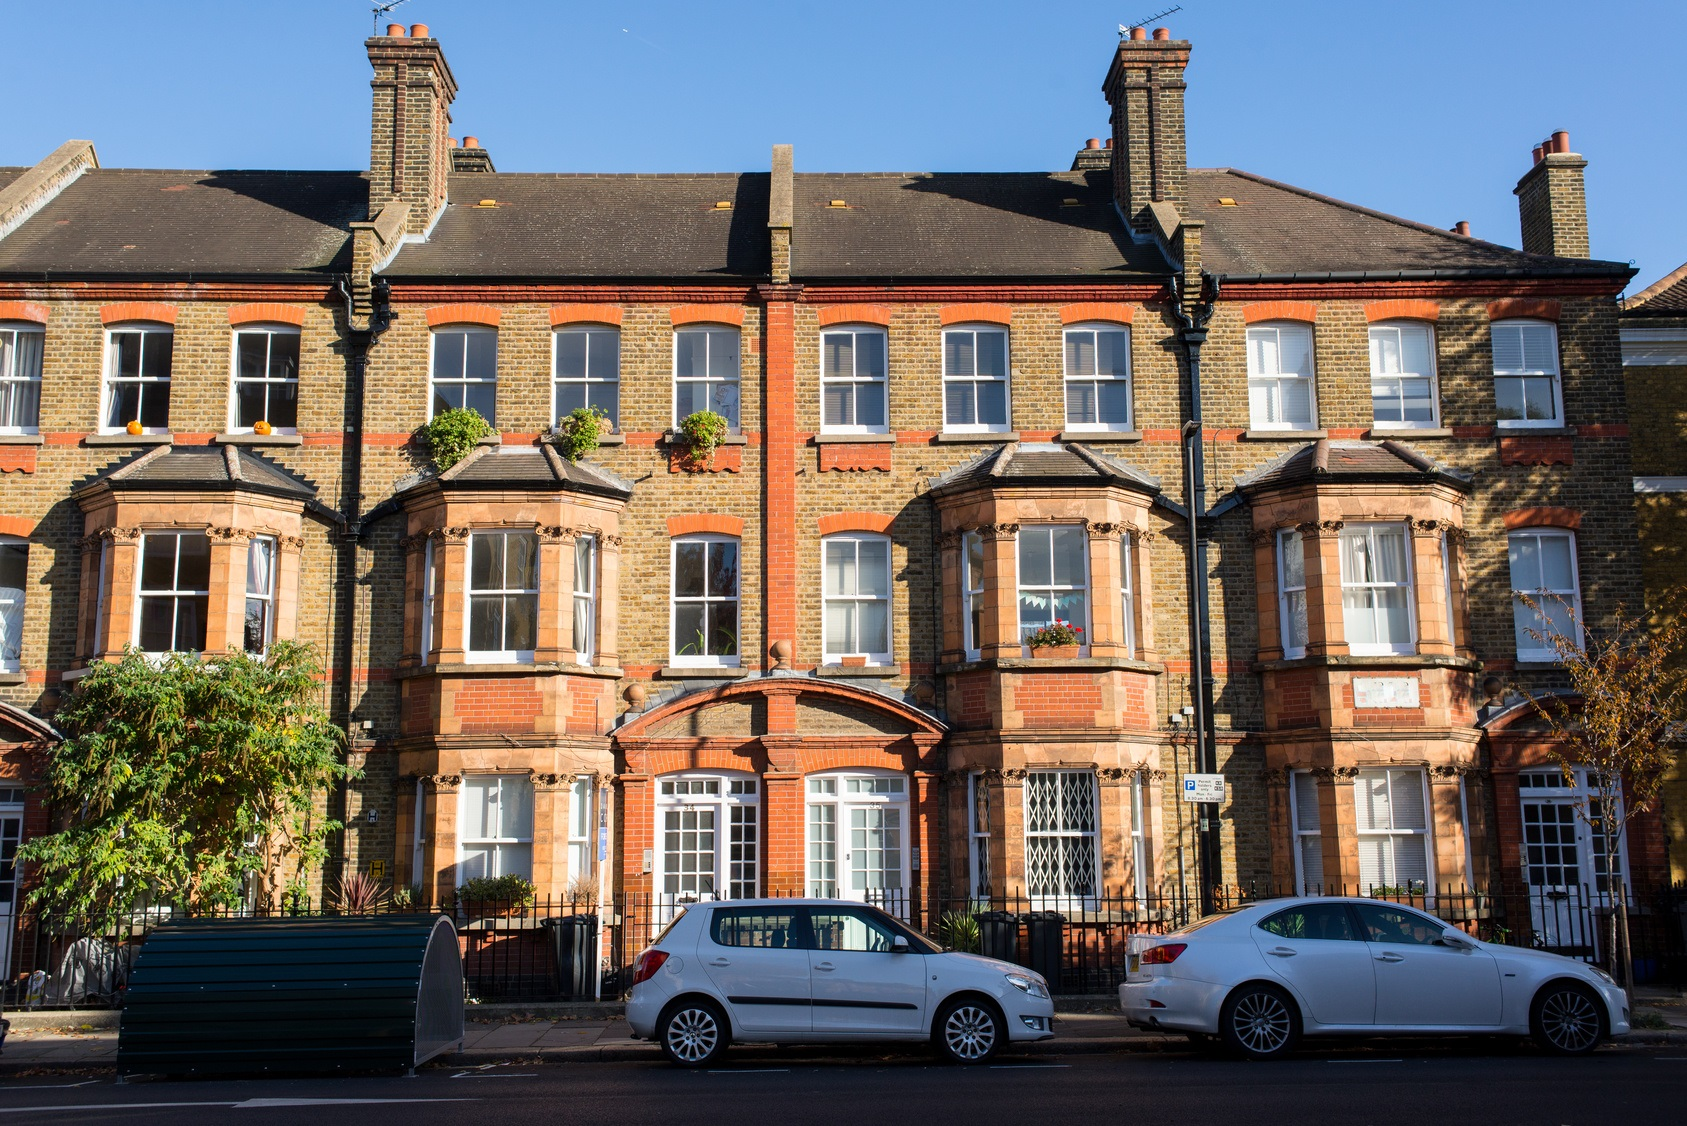 Front view of a classic English Victorian property with three floors of apartments in red and brown bricks with cars parked in front of it